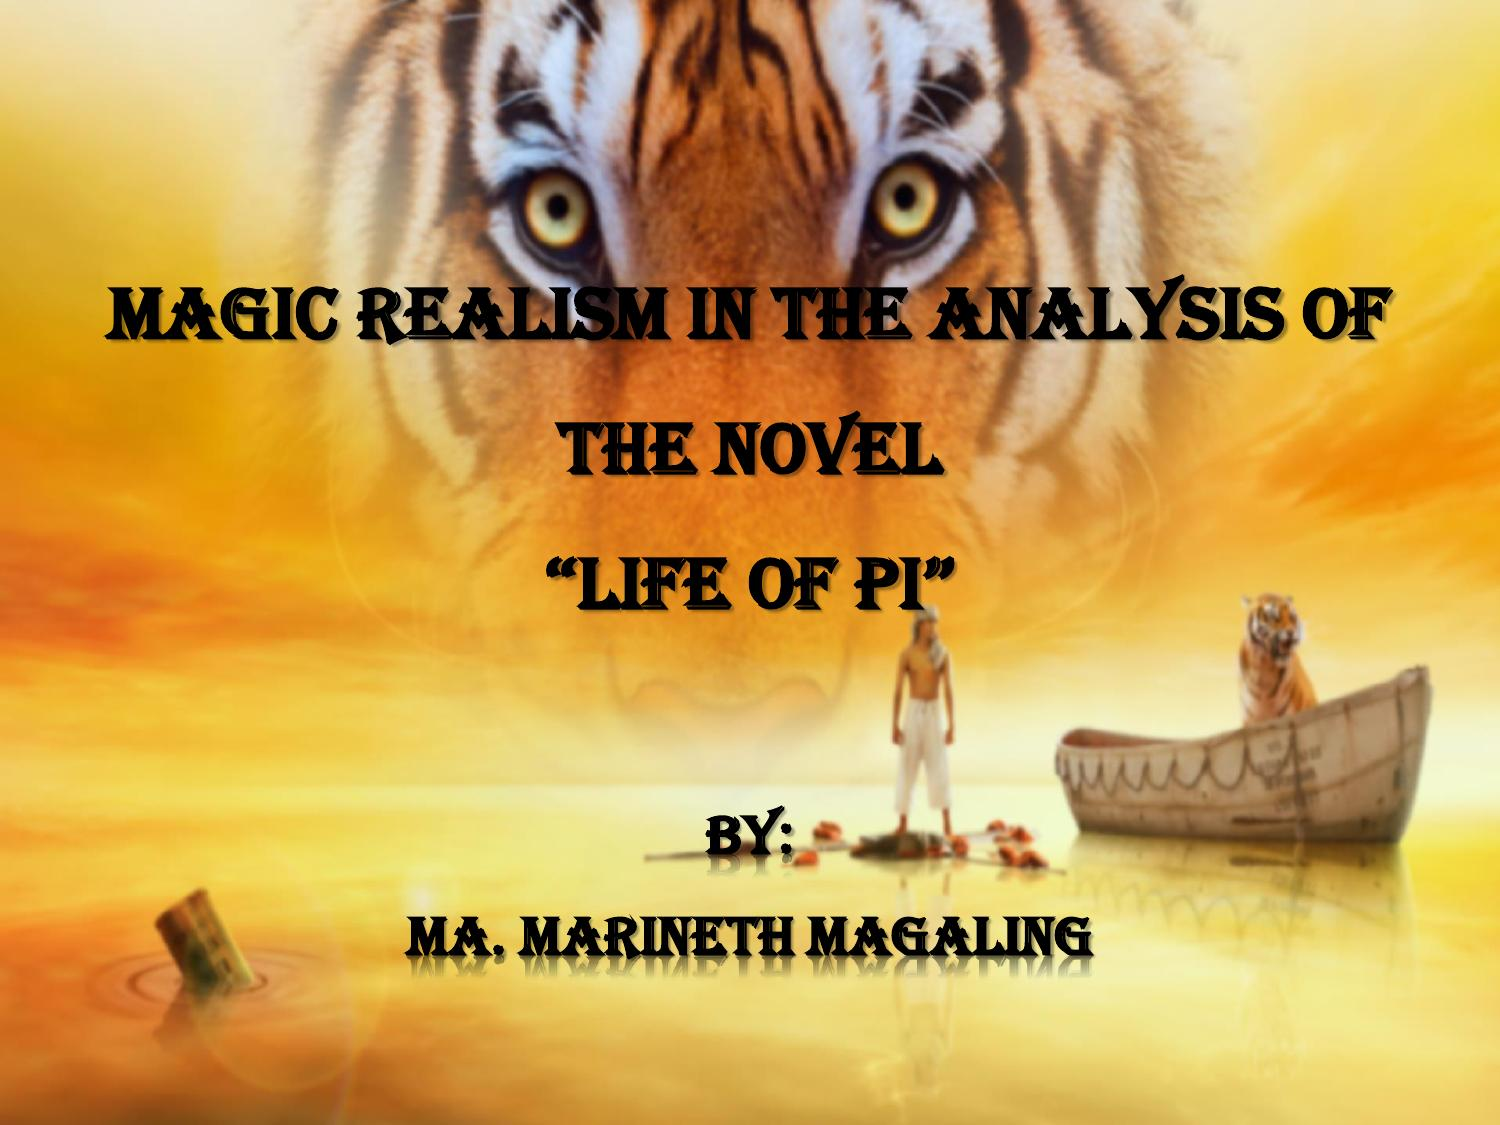 Magic realism in the analysis of the novel life of pi by for Life of pi analysis